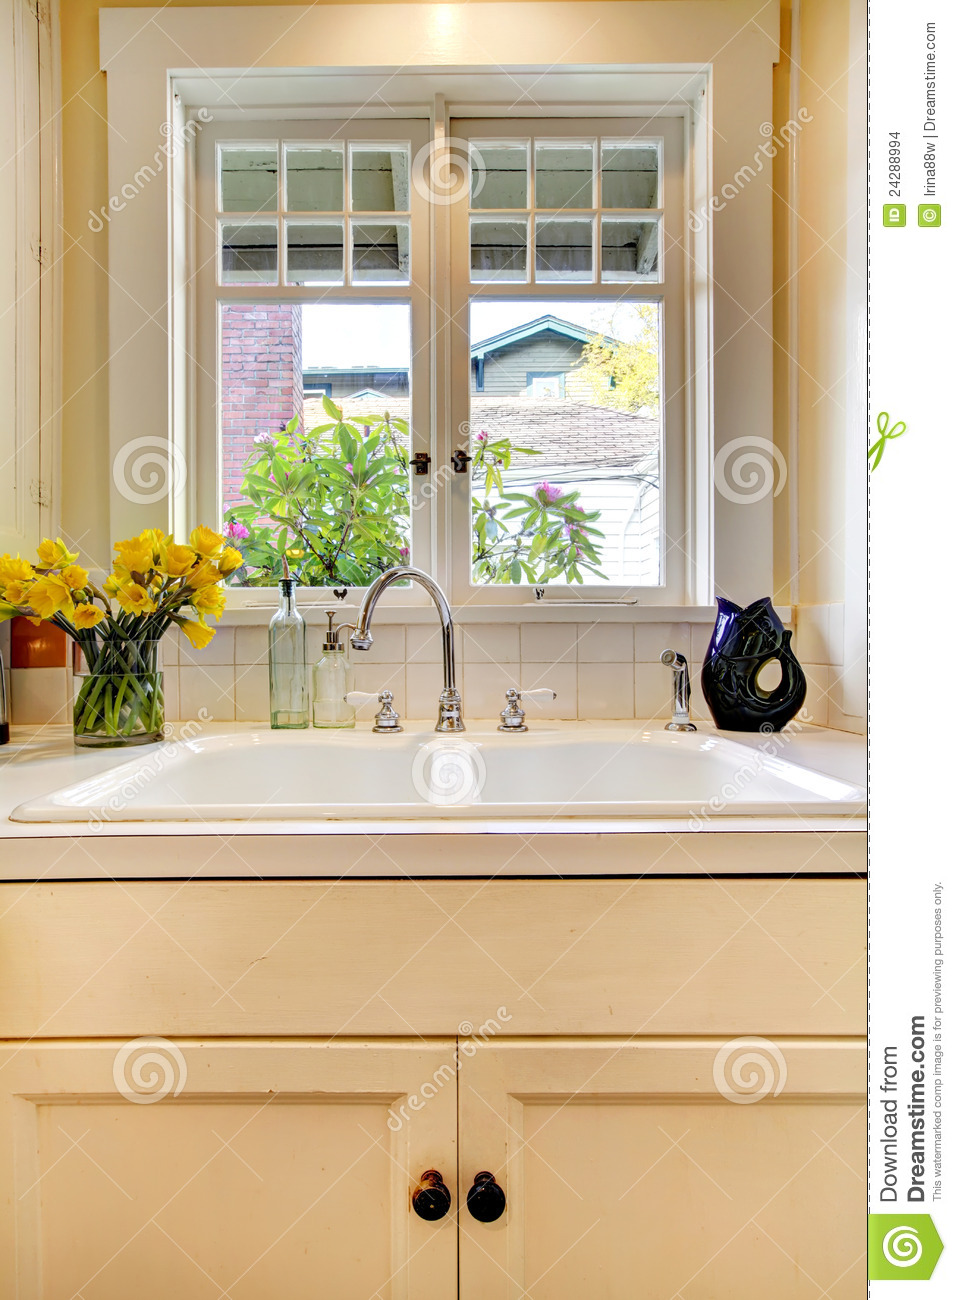 Kitchen Sink And White Cabinet With Window.